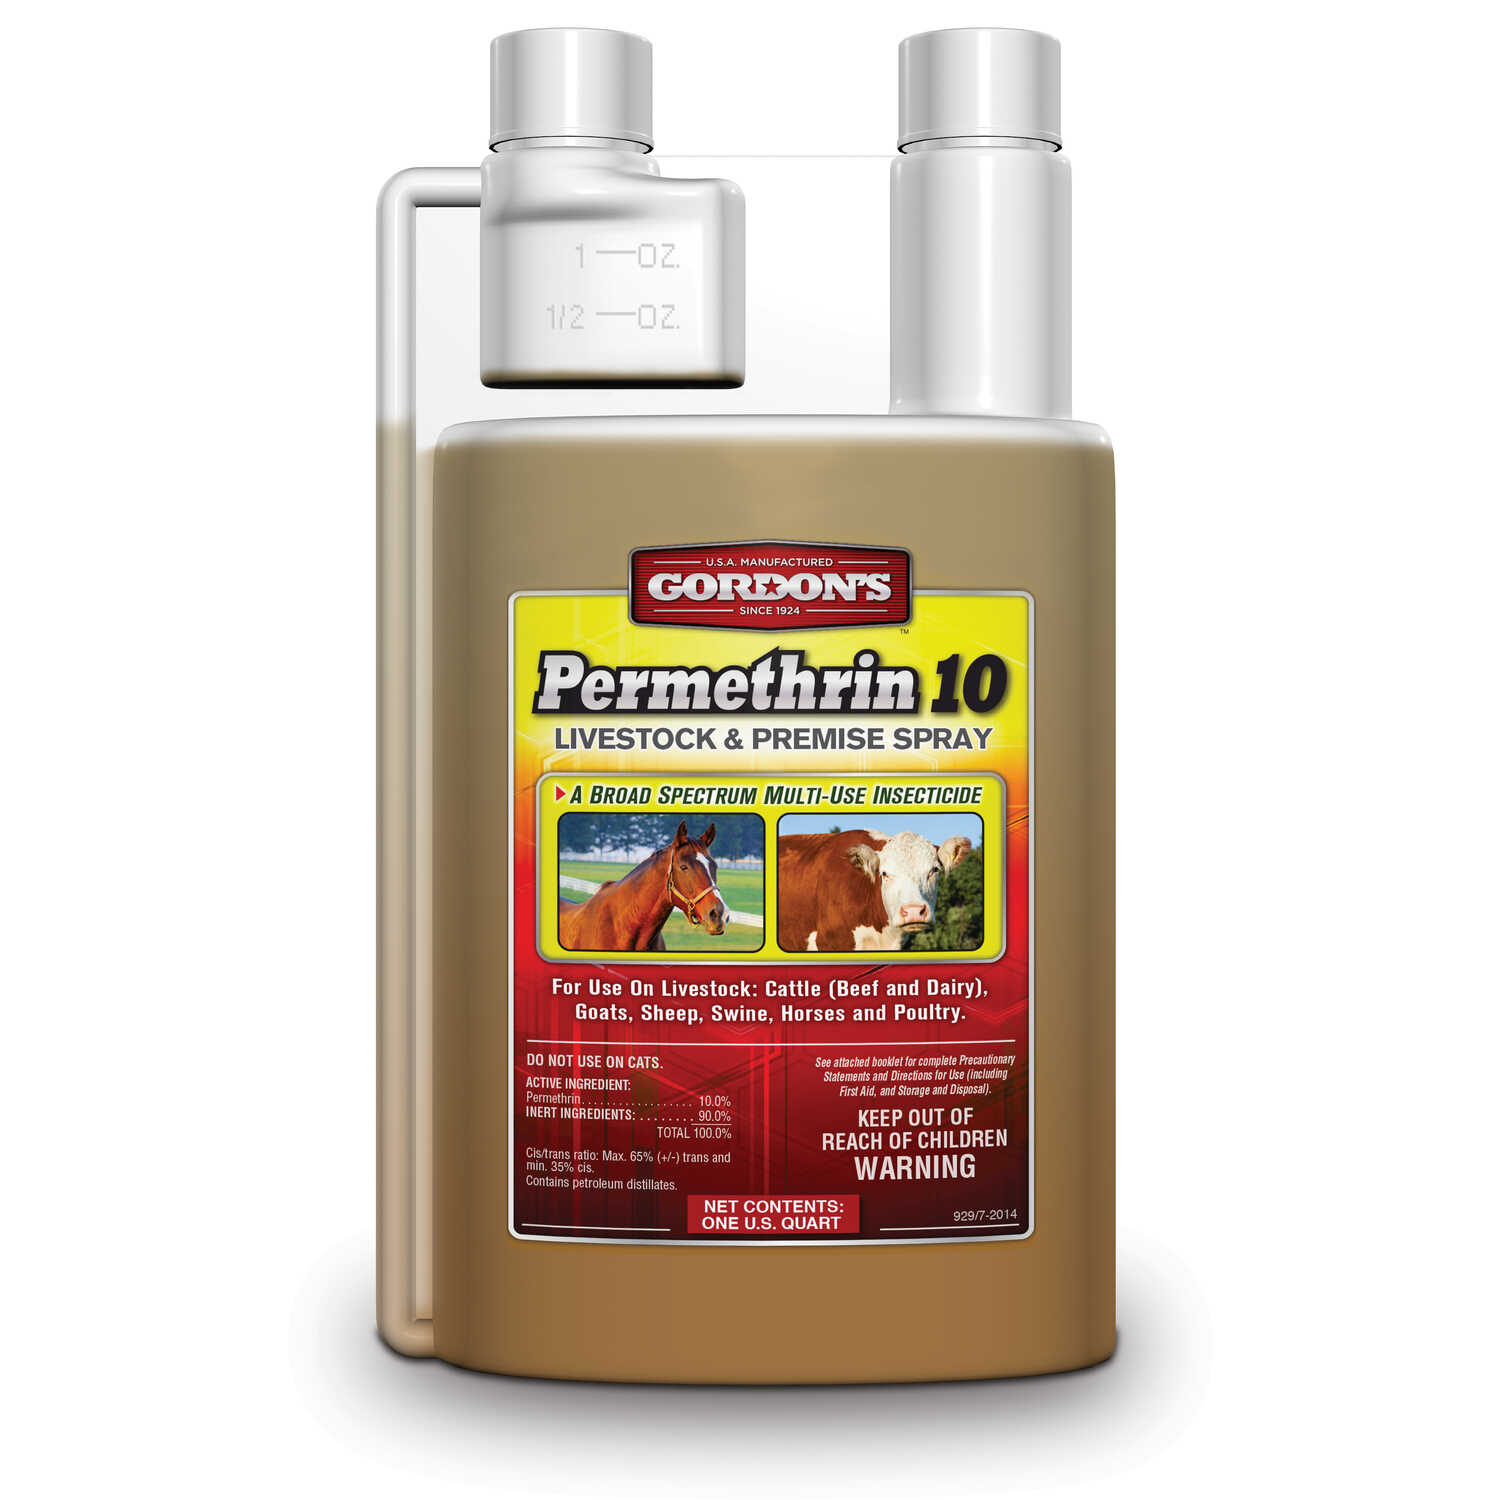 Gordons  Permethrin 10 Livestock & Premise Spray  Insect Killer Concentrate  32 oz.